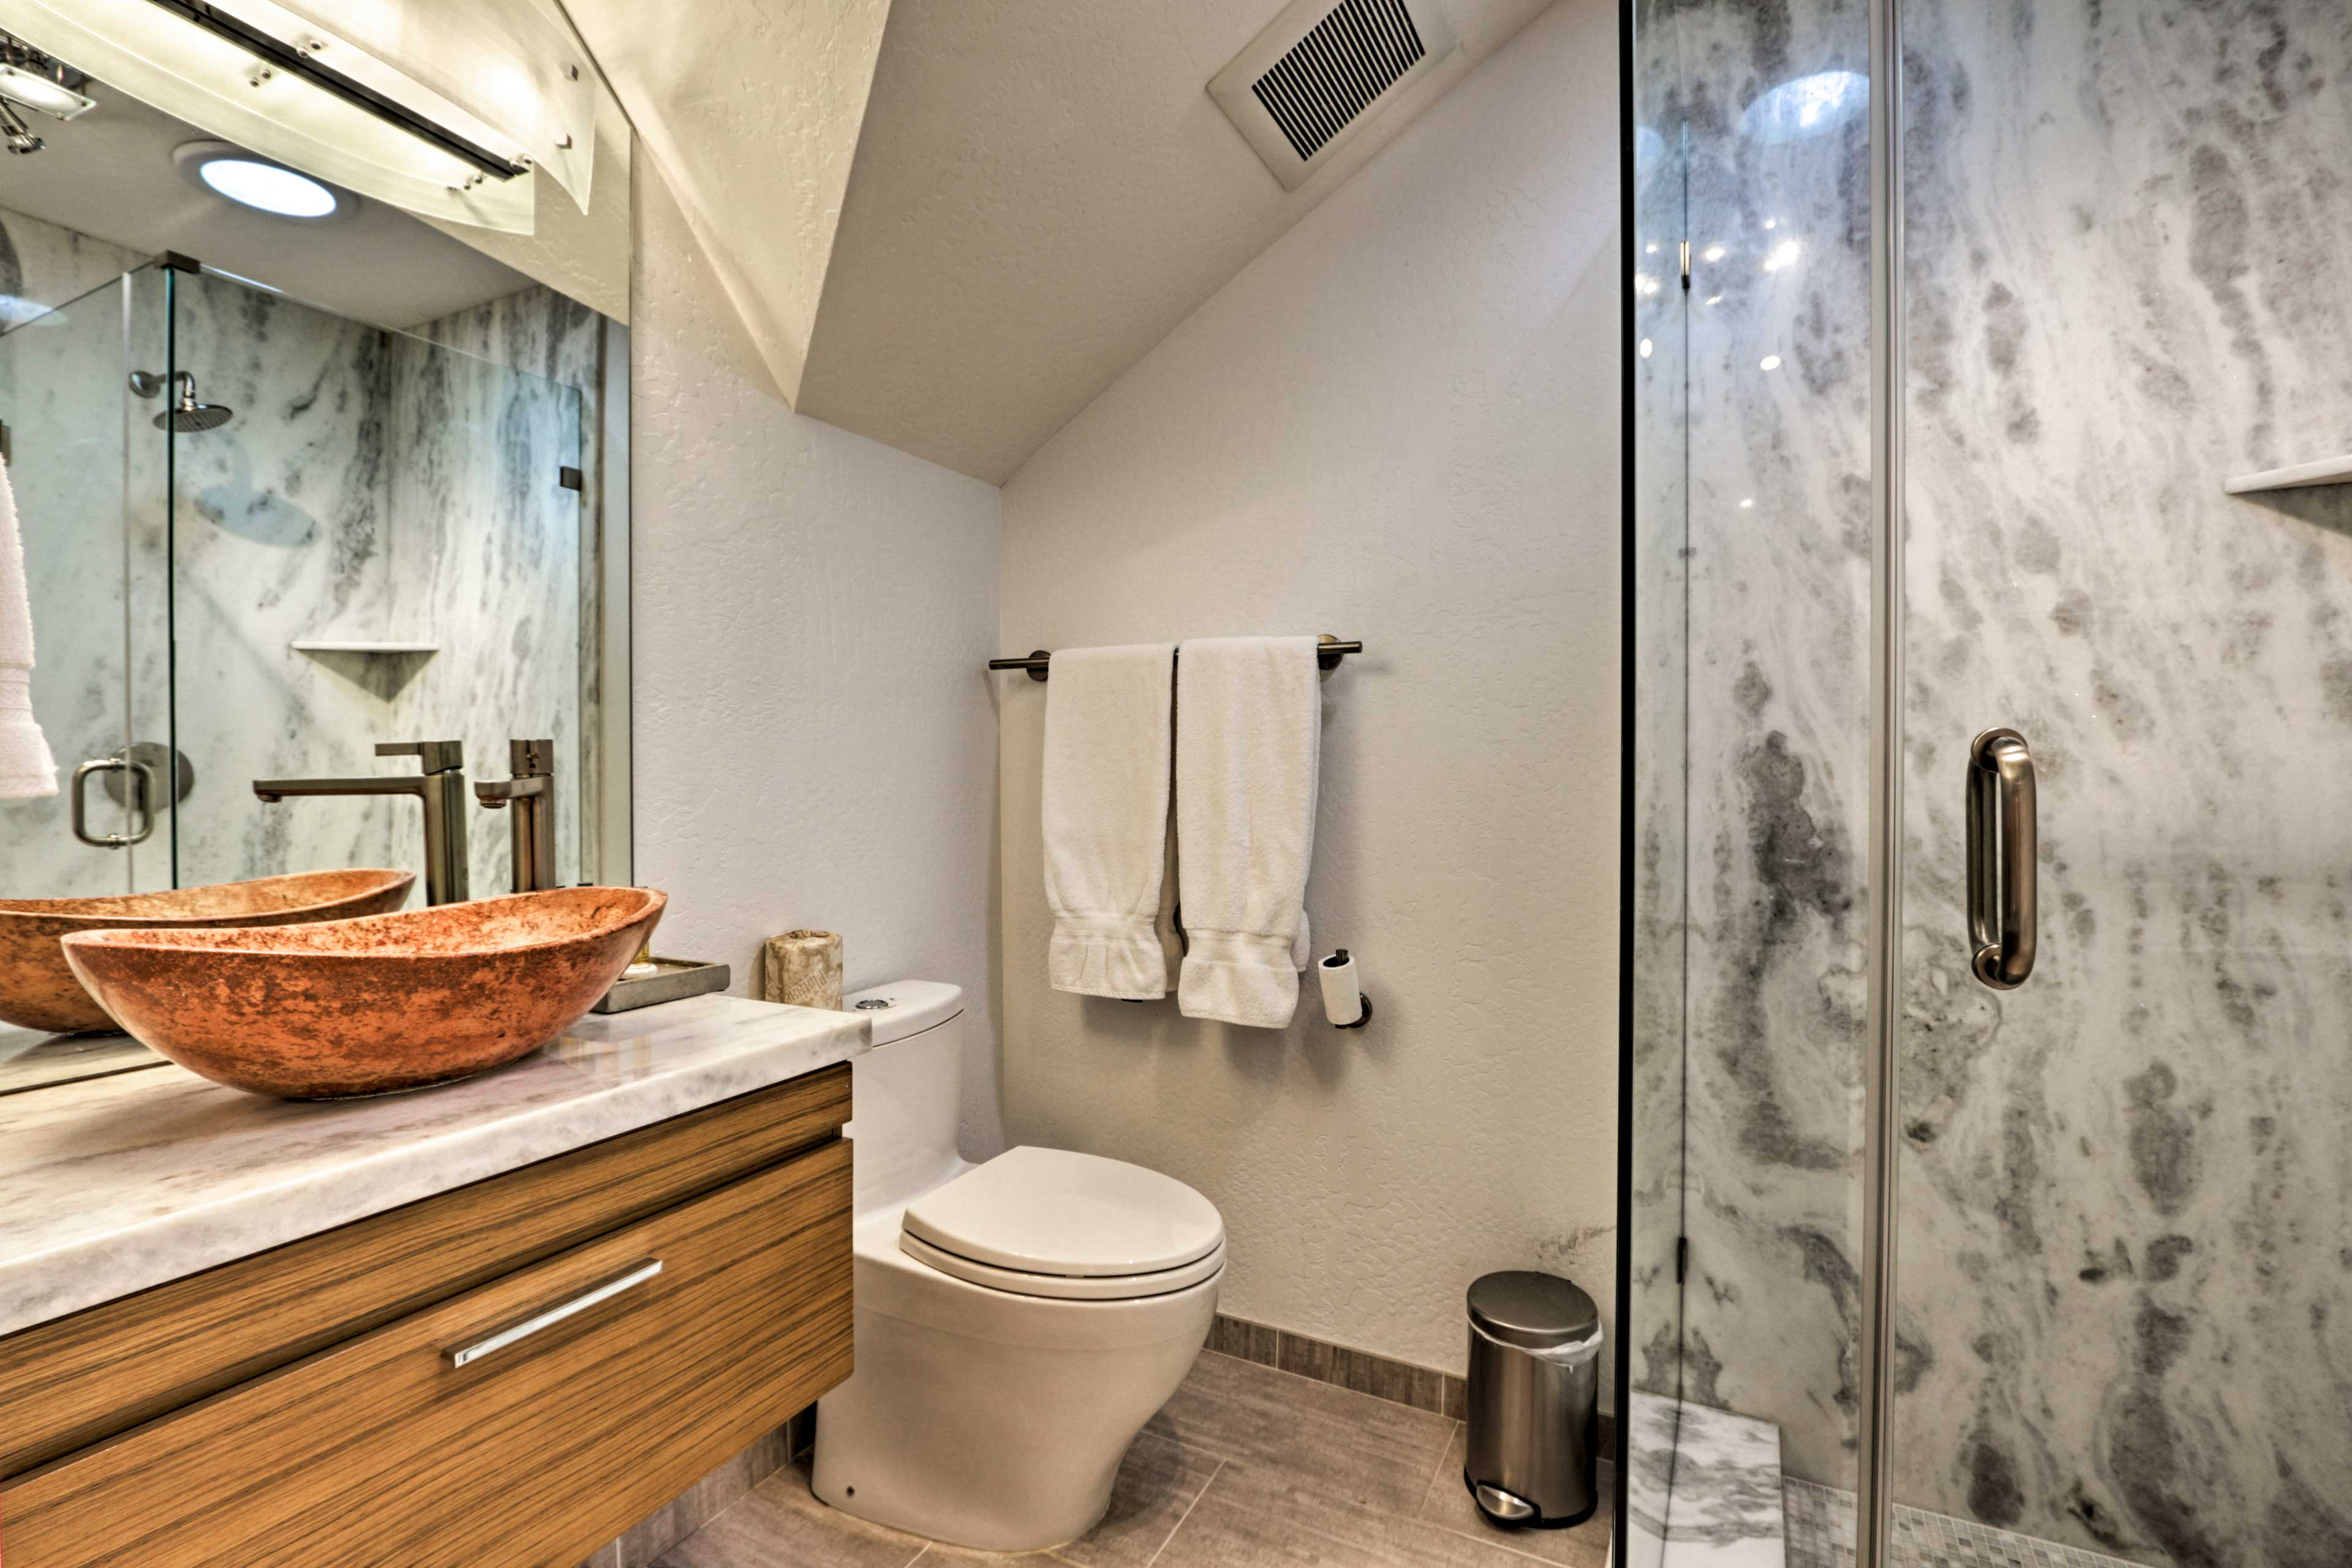 This pristine bathroom also includes a walk-in shower.